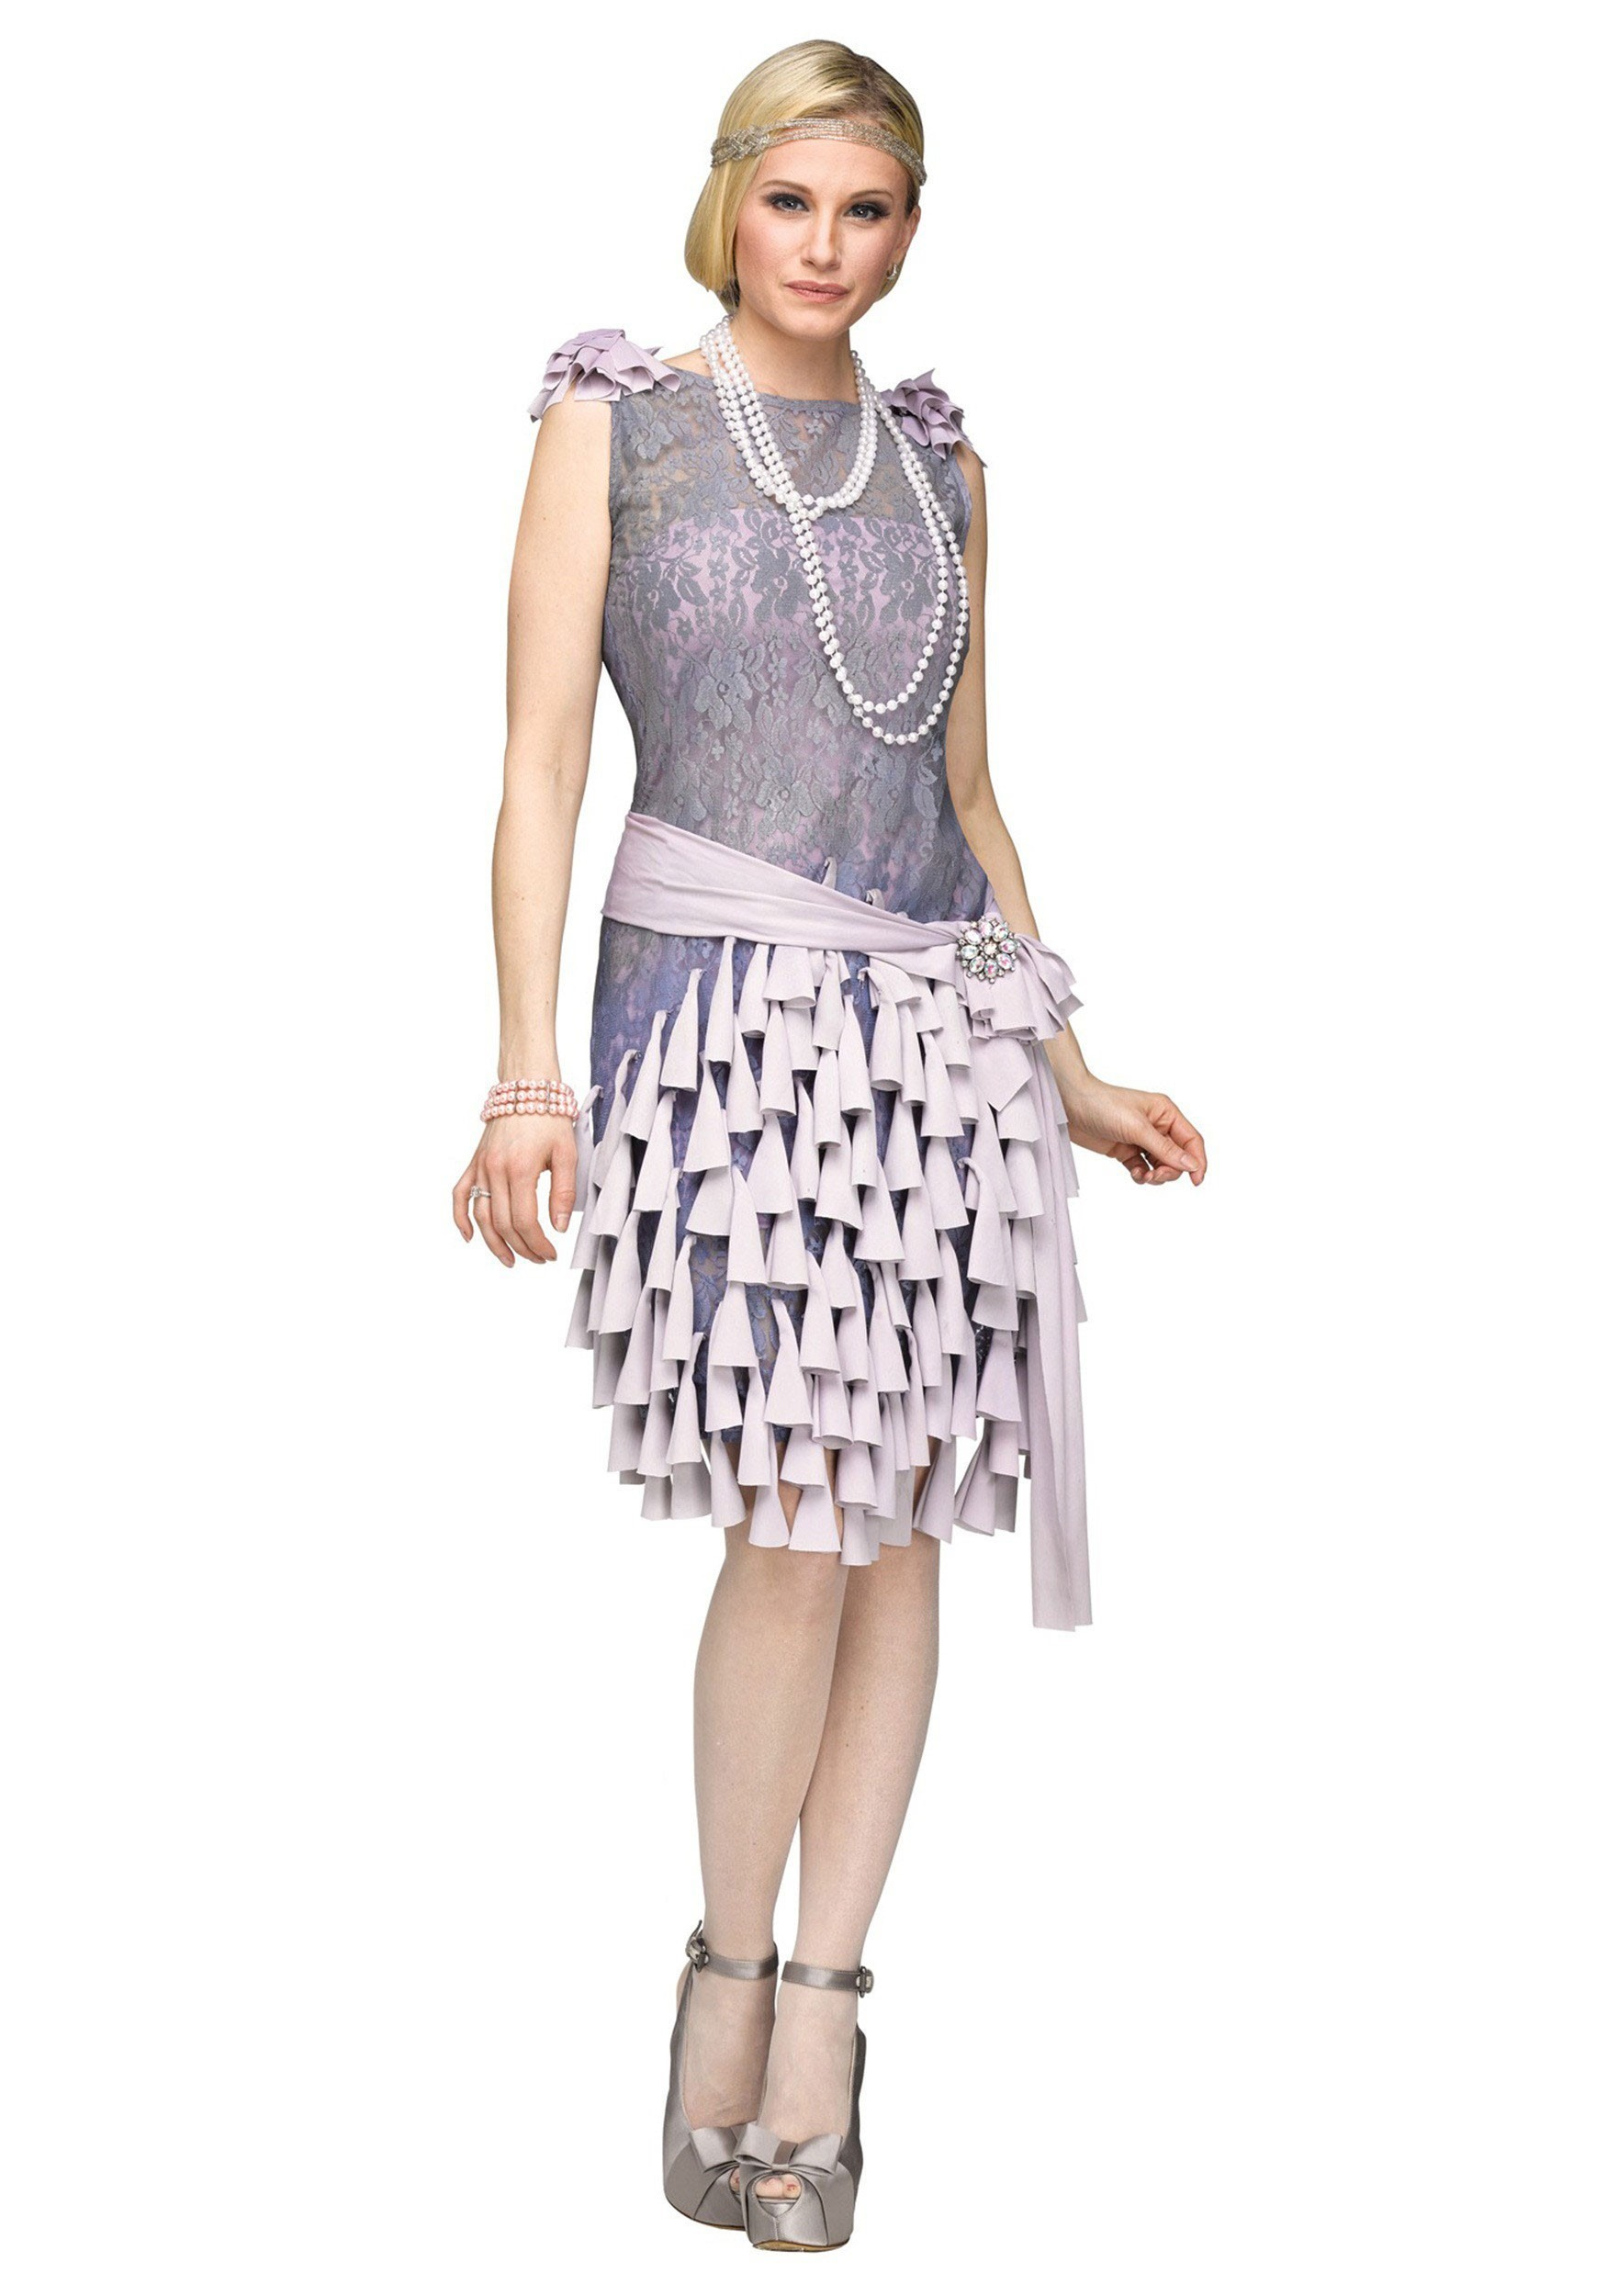 Voorkeur Women's Great Gatsby Daisy Buchanan Bluebells Dress Costume #PD65